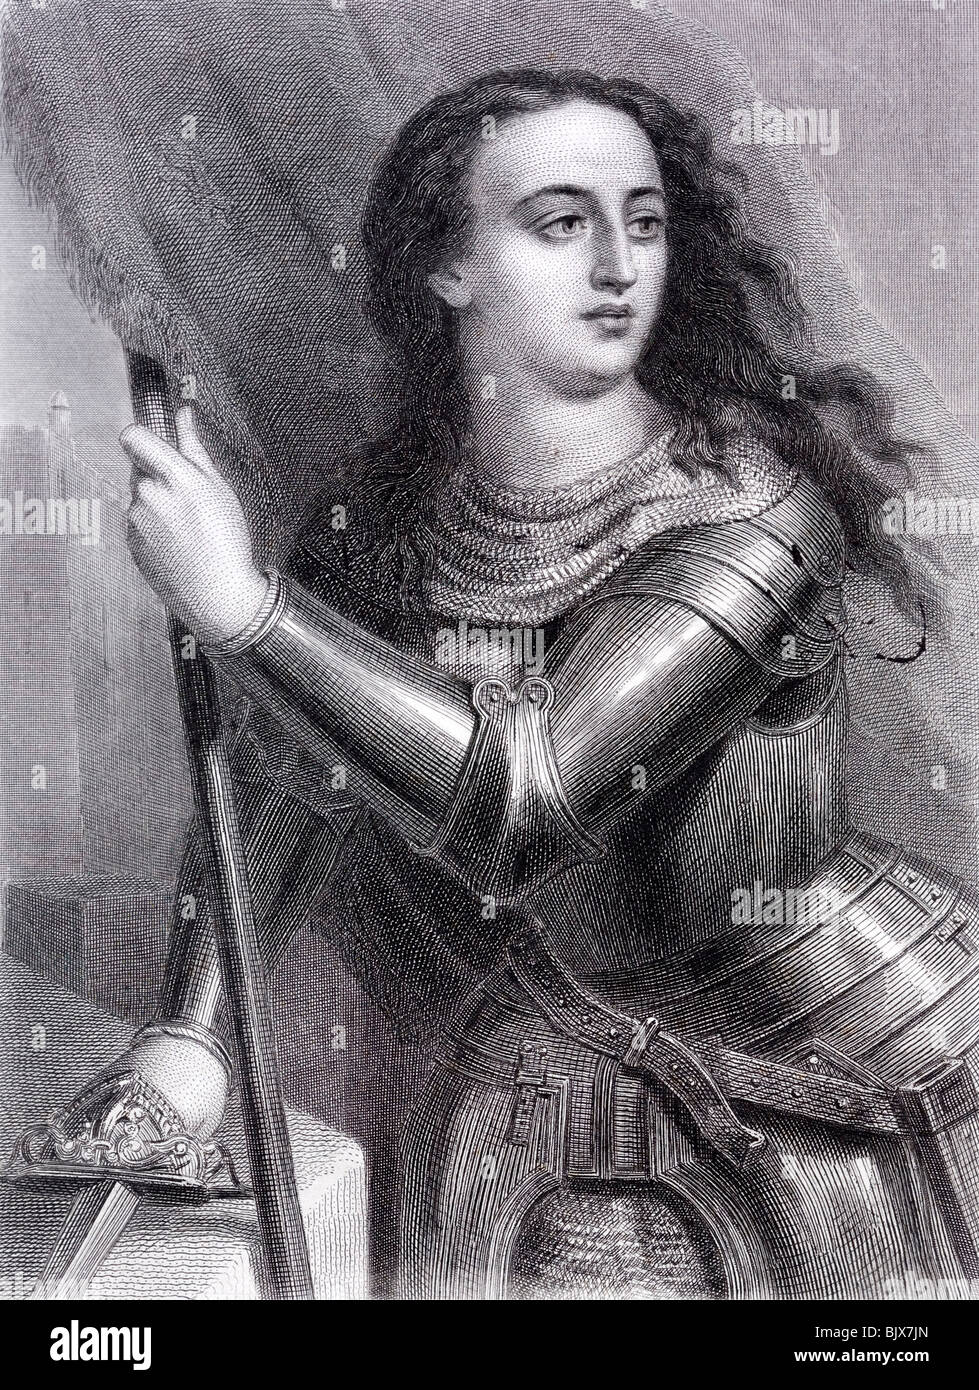 Saint Joan of Arc or The Maid of Orléans The national heroine of France and a Catholic Saint - Stock Image